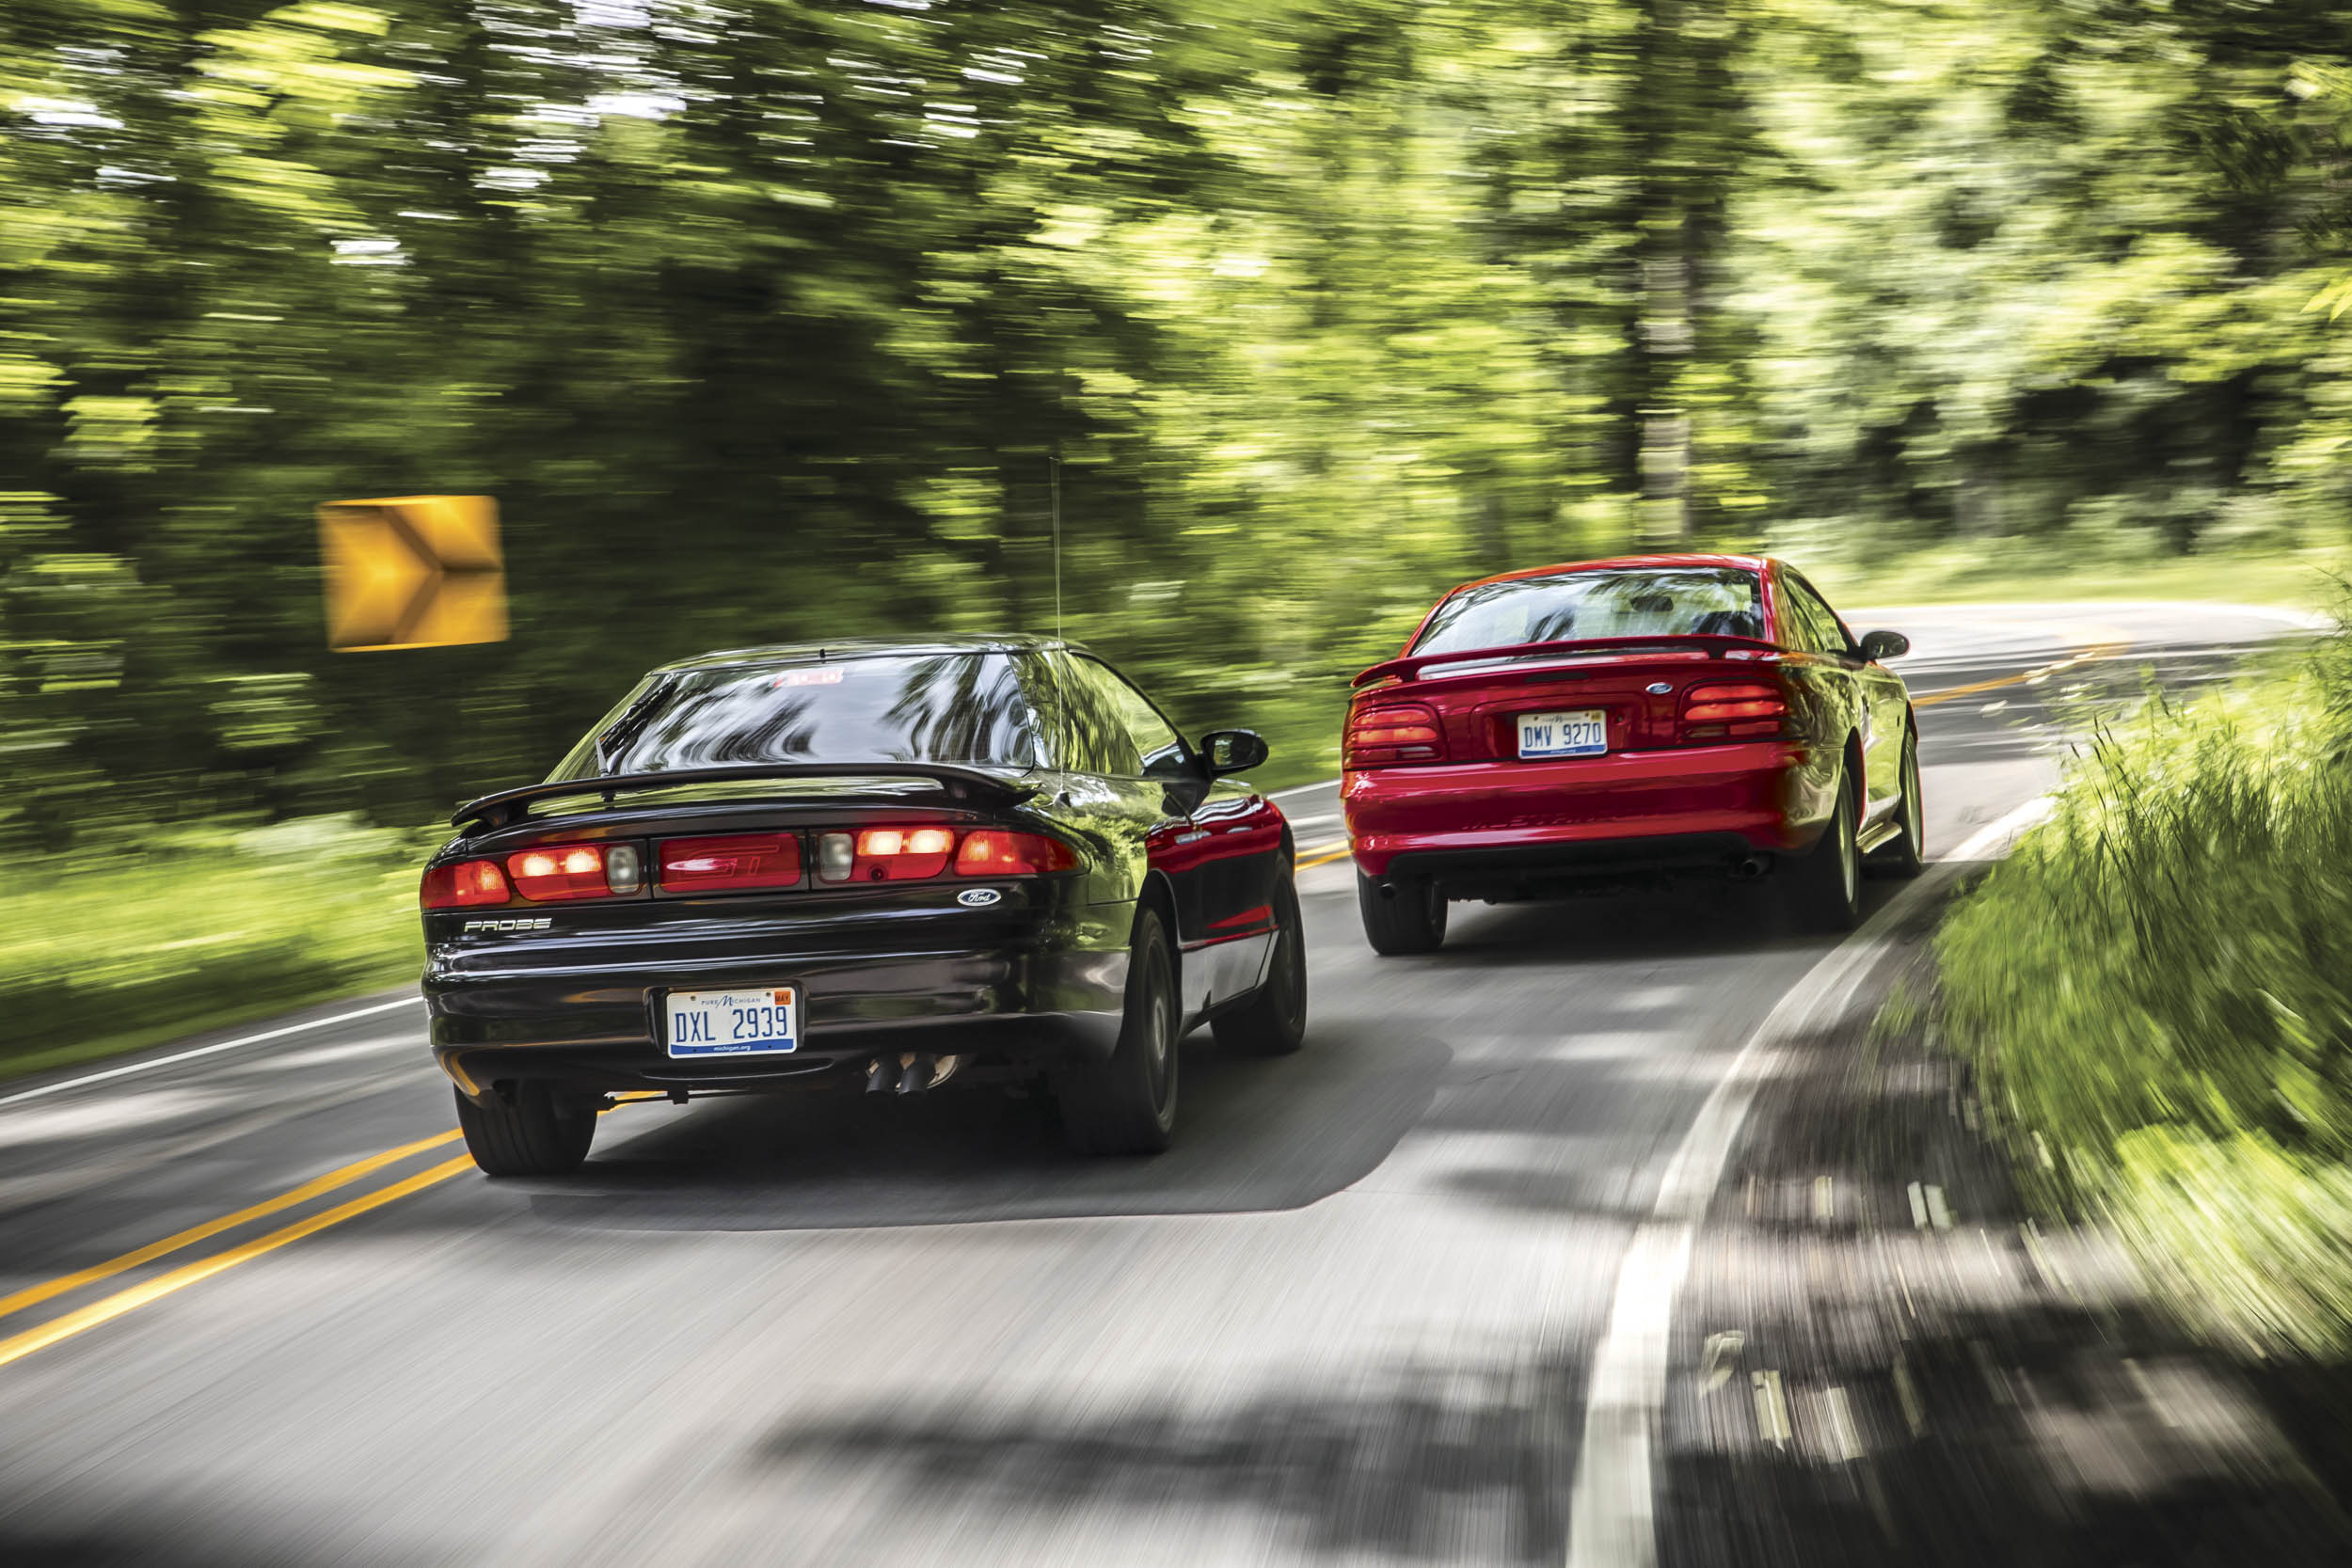 Today it's hard to believe Ford would have sacrificed its beloved pony car for a front-drive Japanese mashup. Fortunately for enthusiasts everywhere, we had our cake and got to eat it, too.